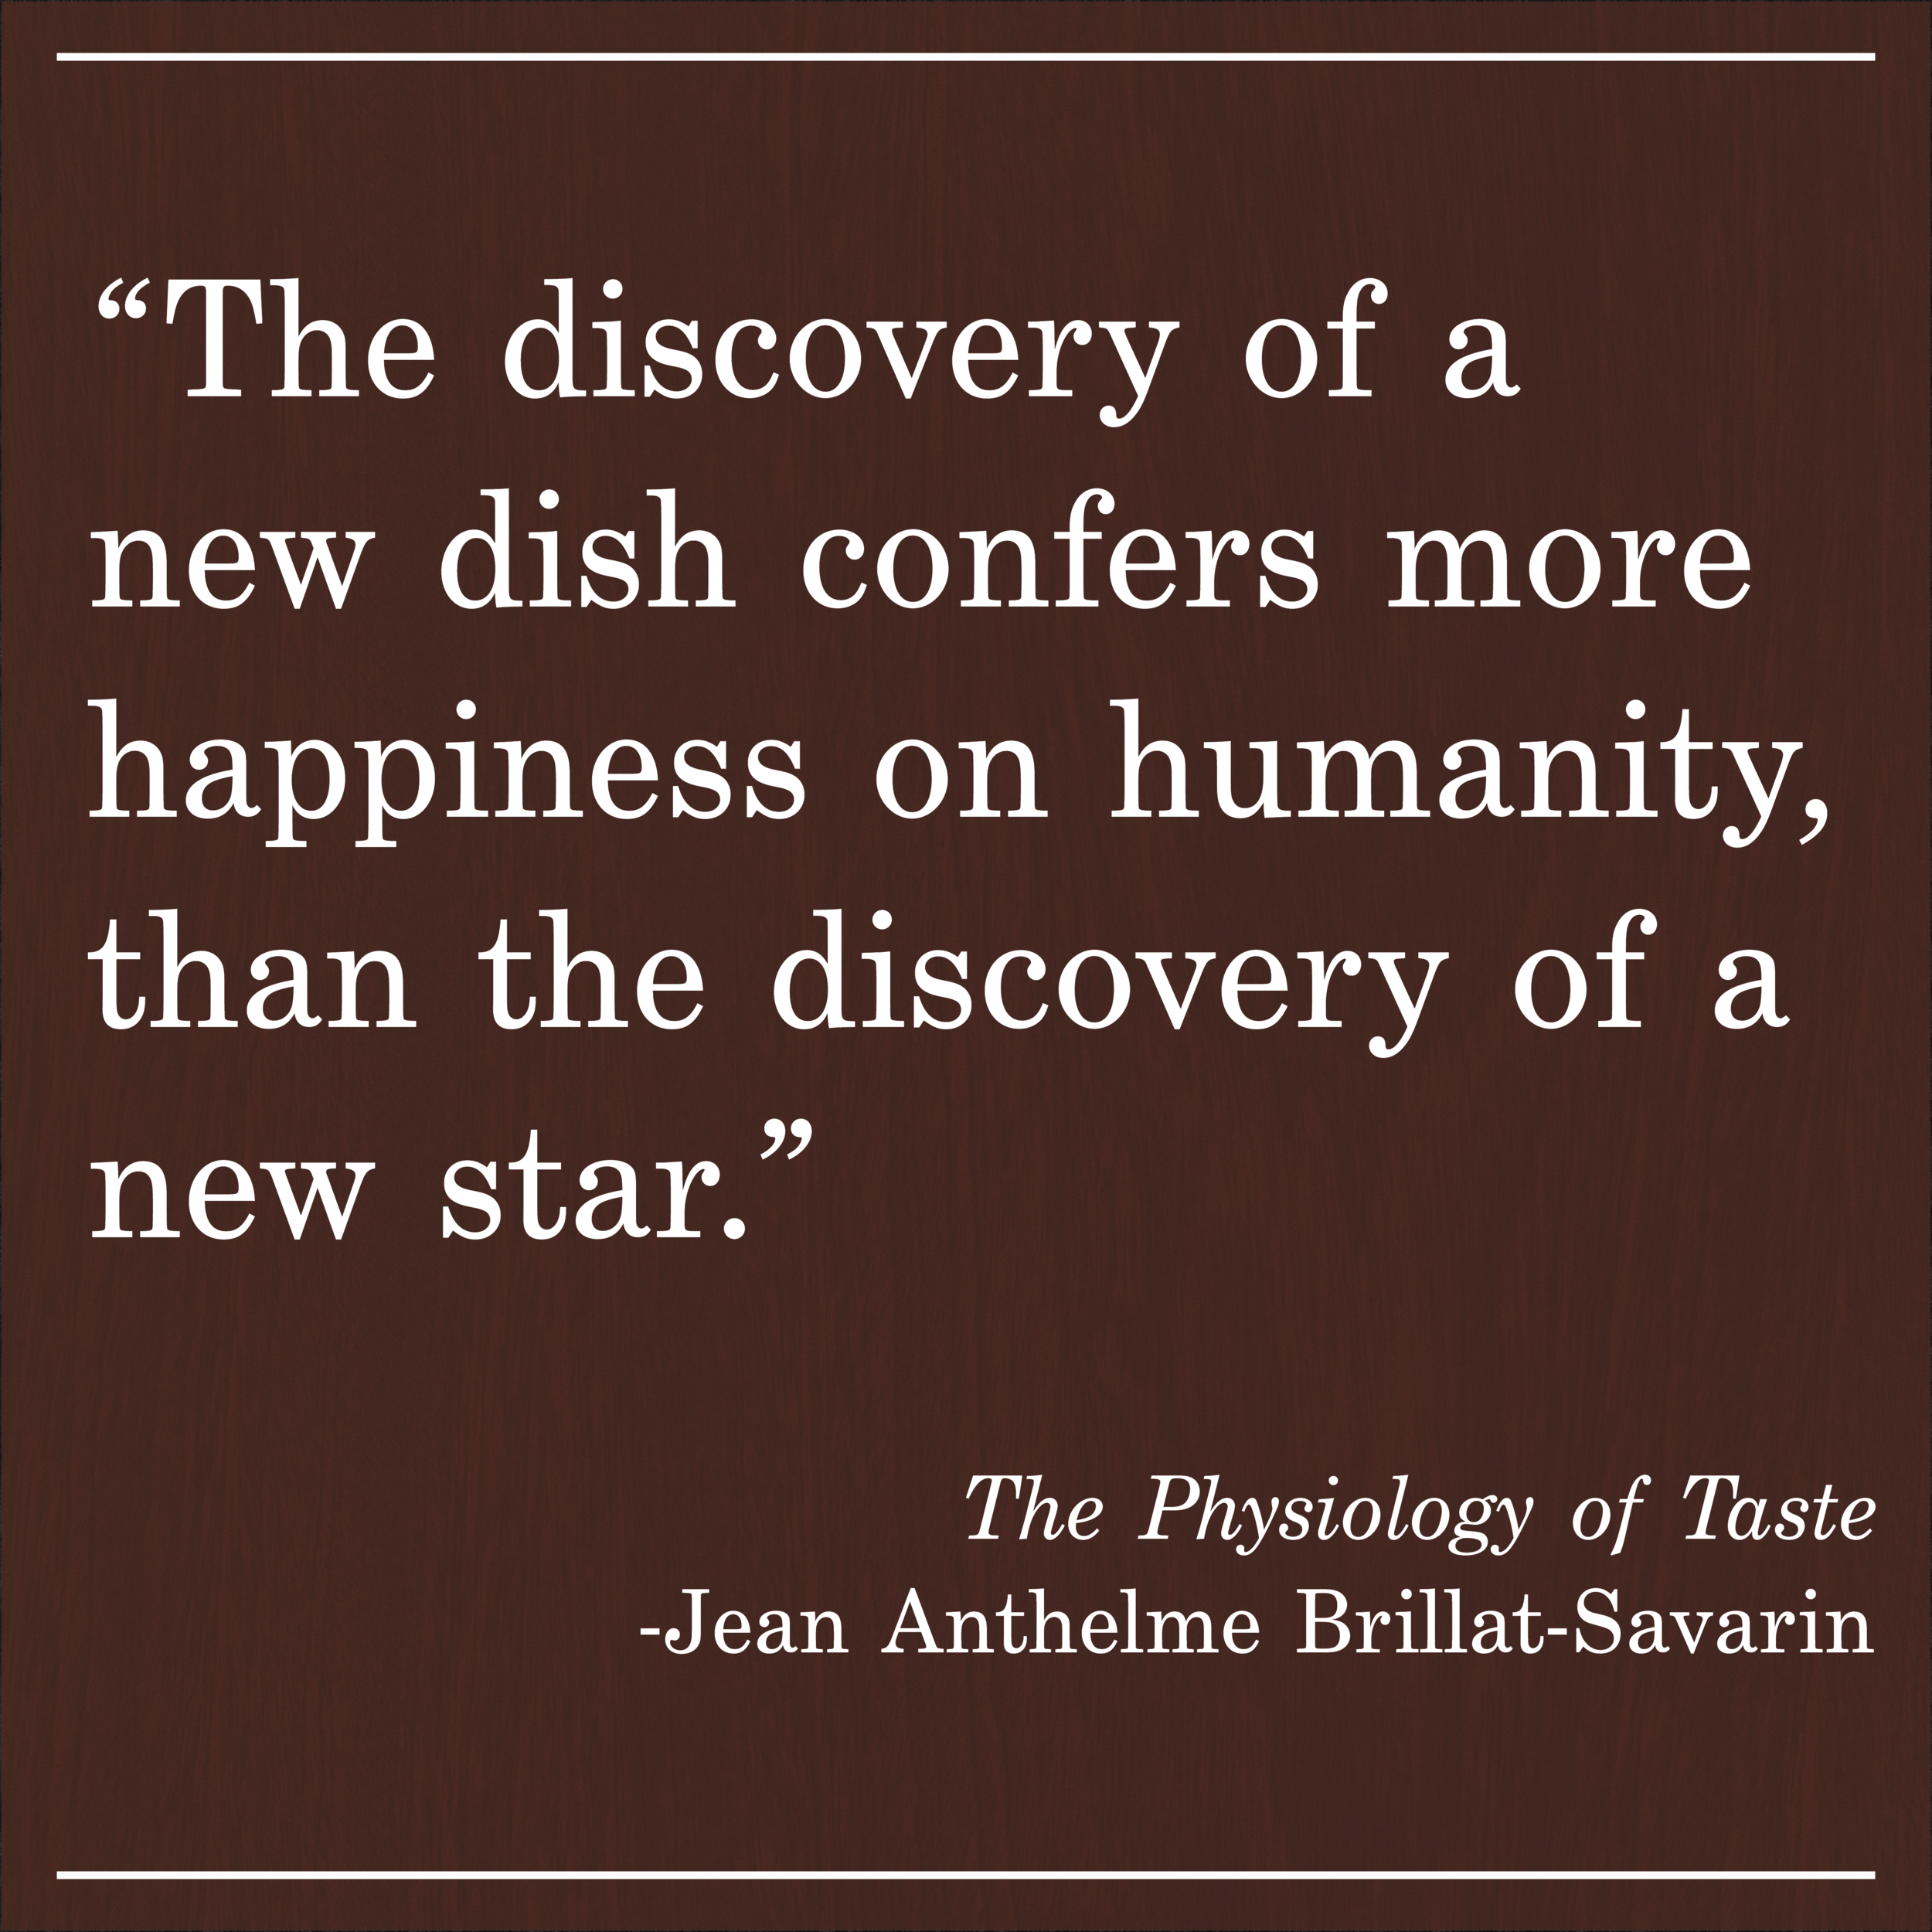 Daily Quote The Physiology of Taste by Jean Anthelme Brillat-Savarin